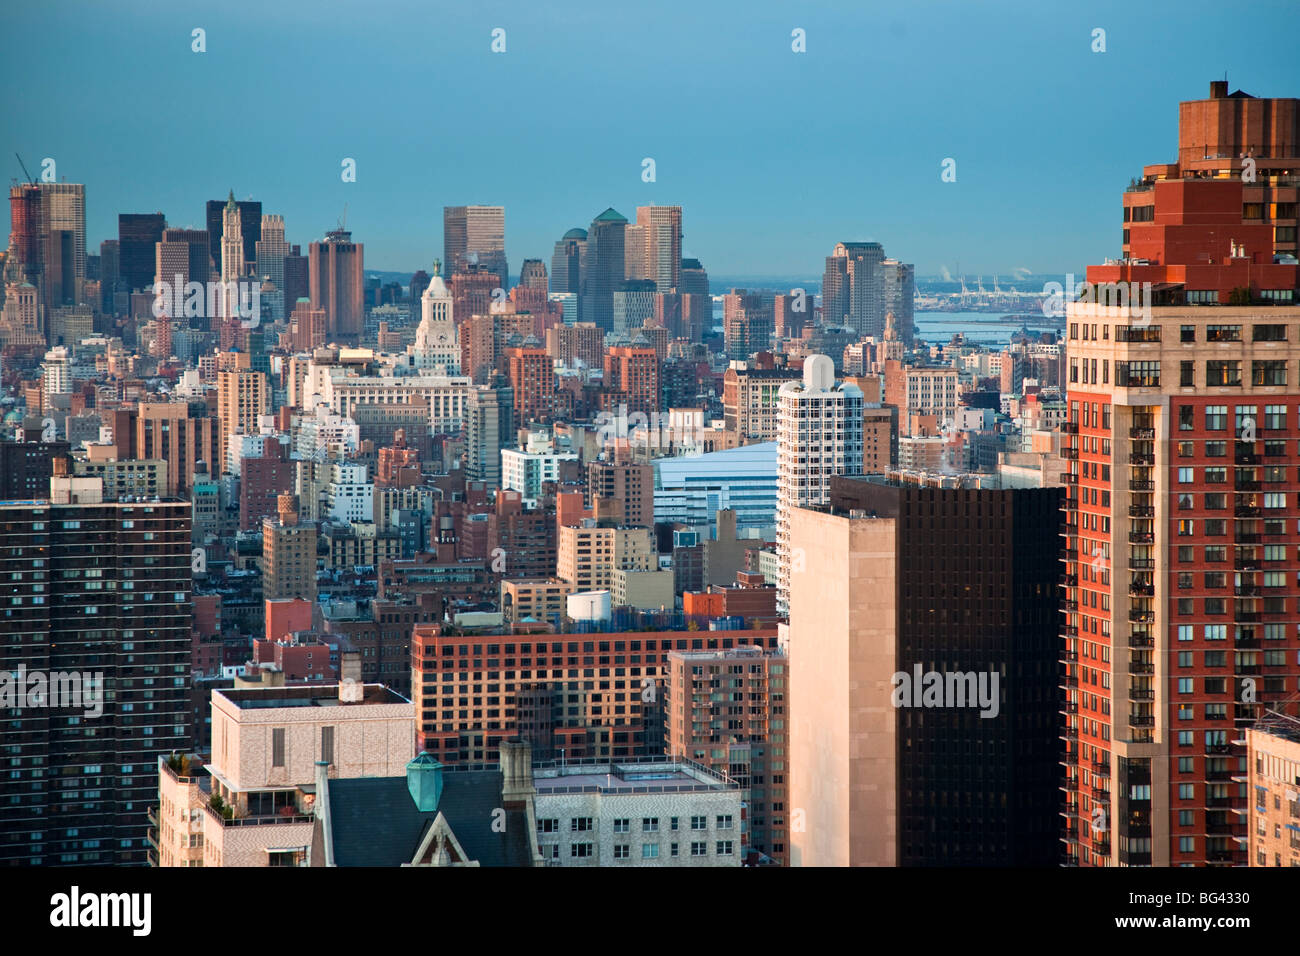 Apartments In Midtown Manhattan New York City Usa Stock Photo Royalty Free